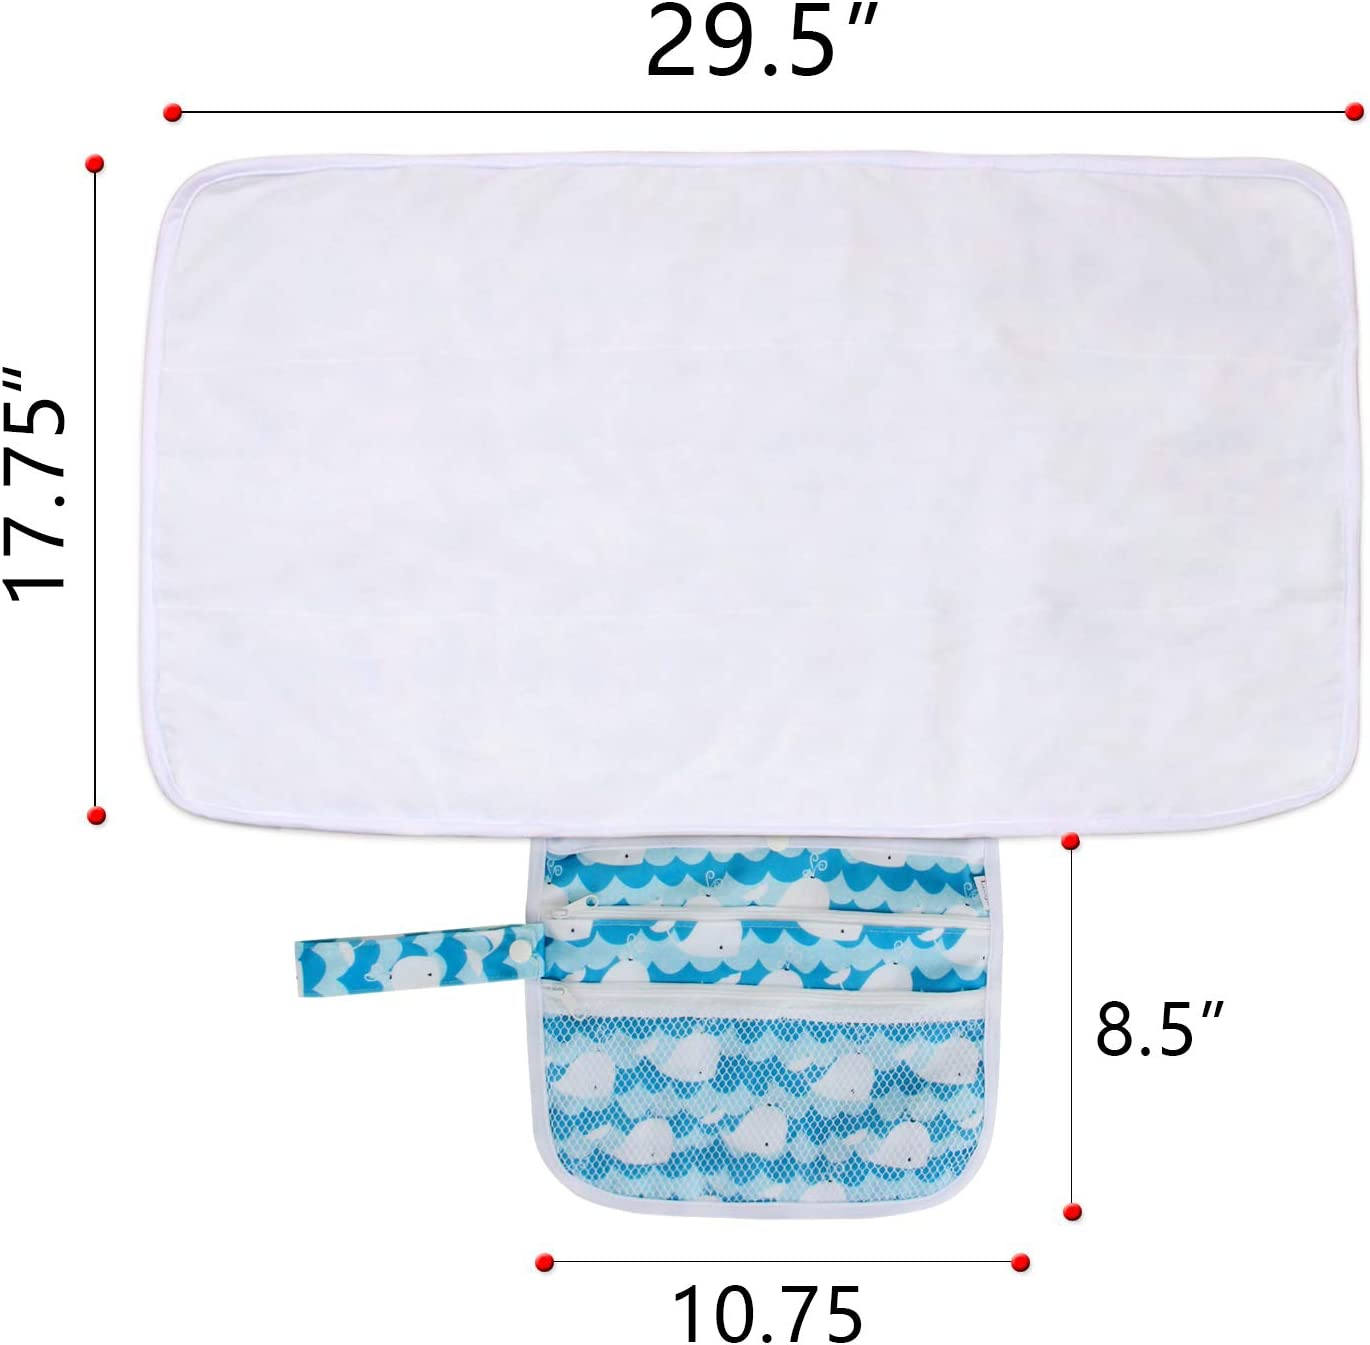 Foldable and Machine Washable Baby Changing Pad with Pockets Diaper Changing Clutch for Home or Travel Use Luxja Portable Diaper Changing Pad Polar Bears